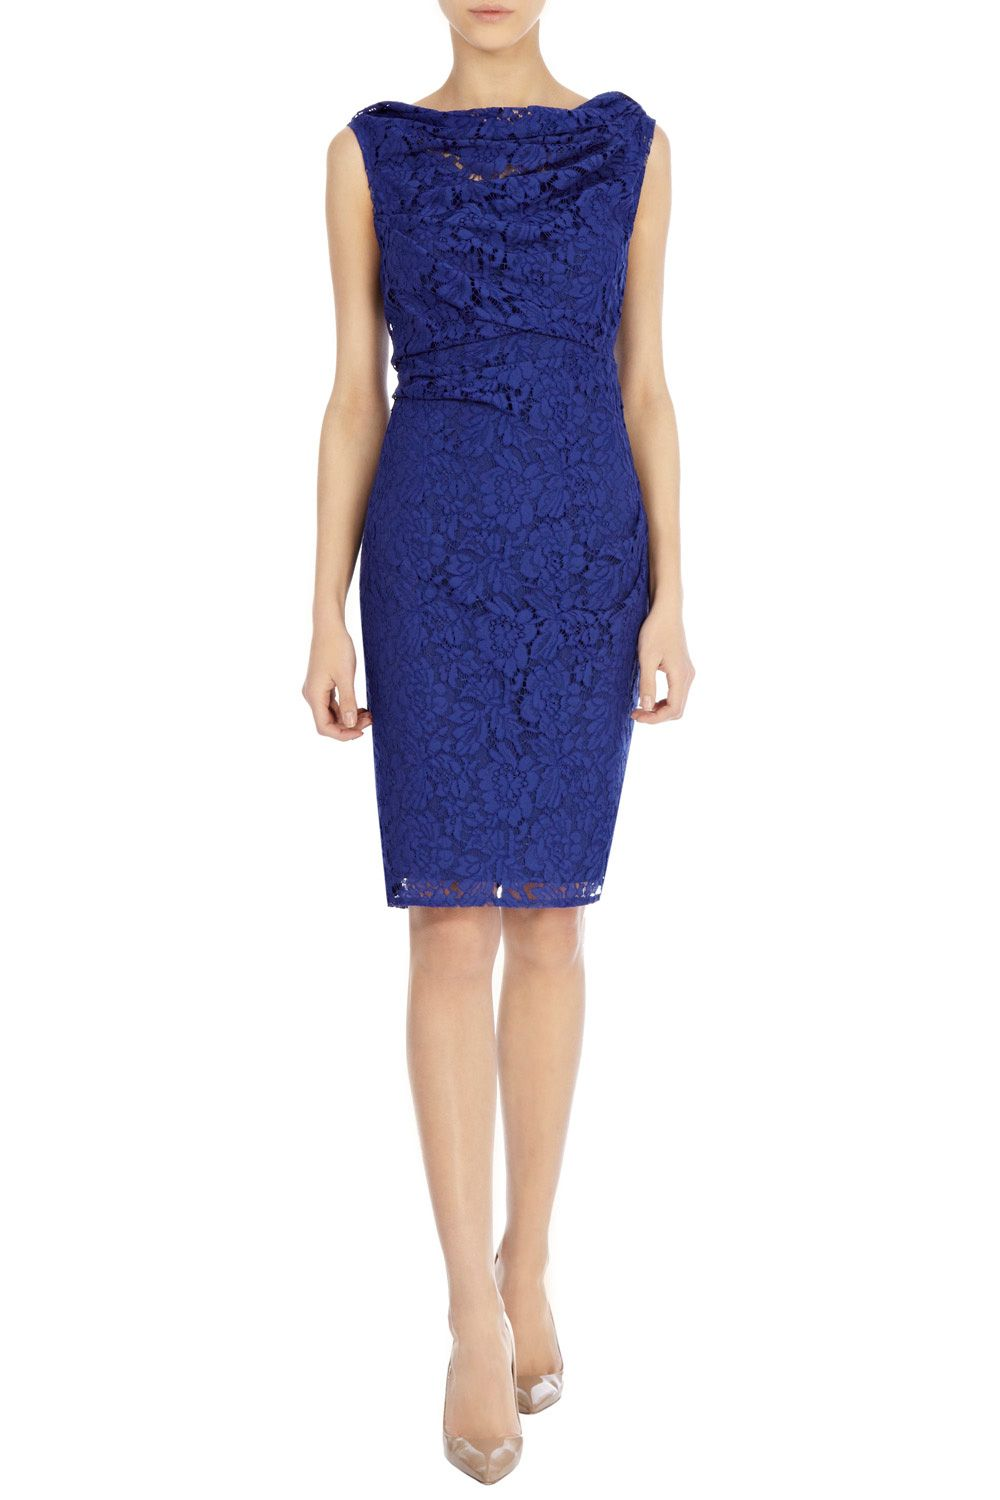 Lianna Drapped Neckline Lace Dress